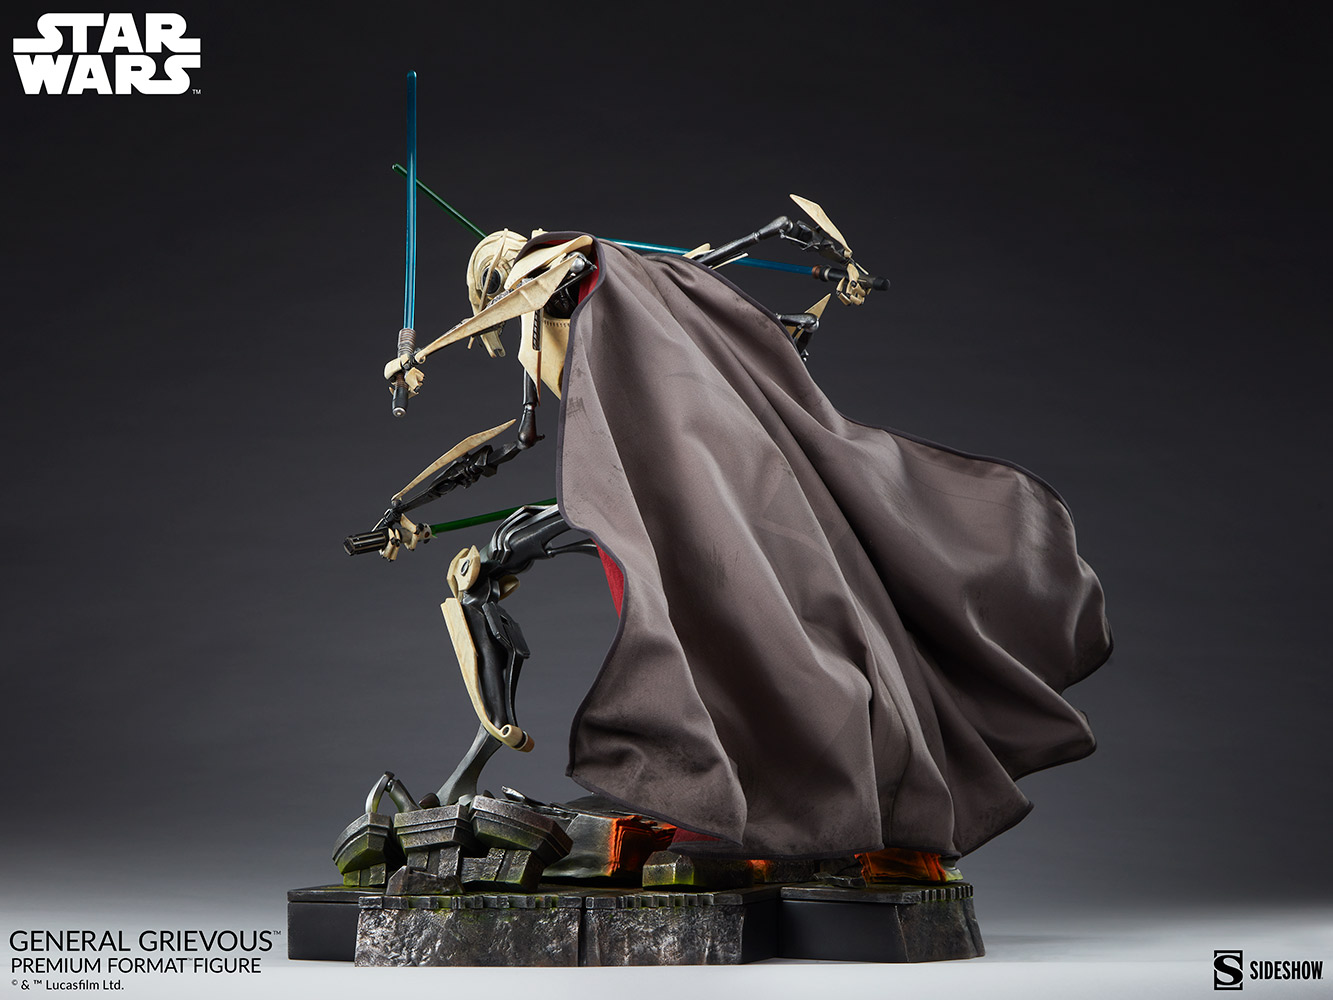 Star Wars: Revenge of the Sith : General Grievous Premium Format Figure General-grievous_star-wars_gallery_6155e6611810d